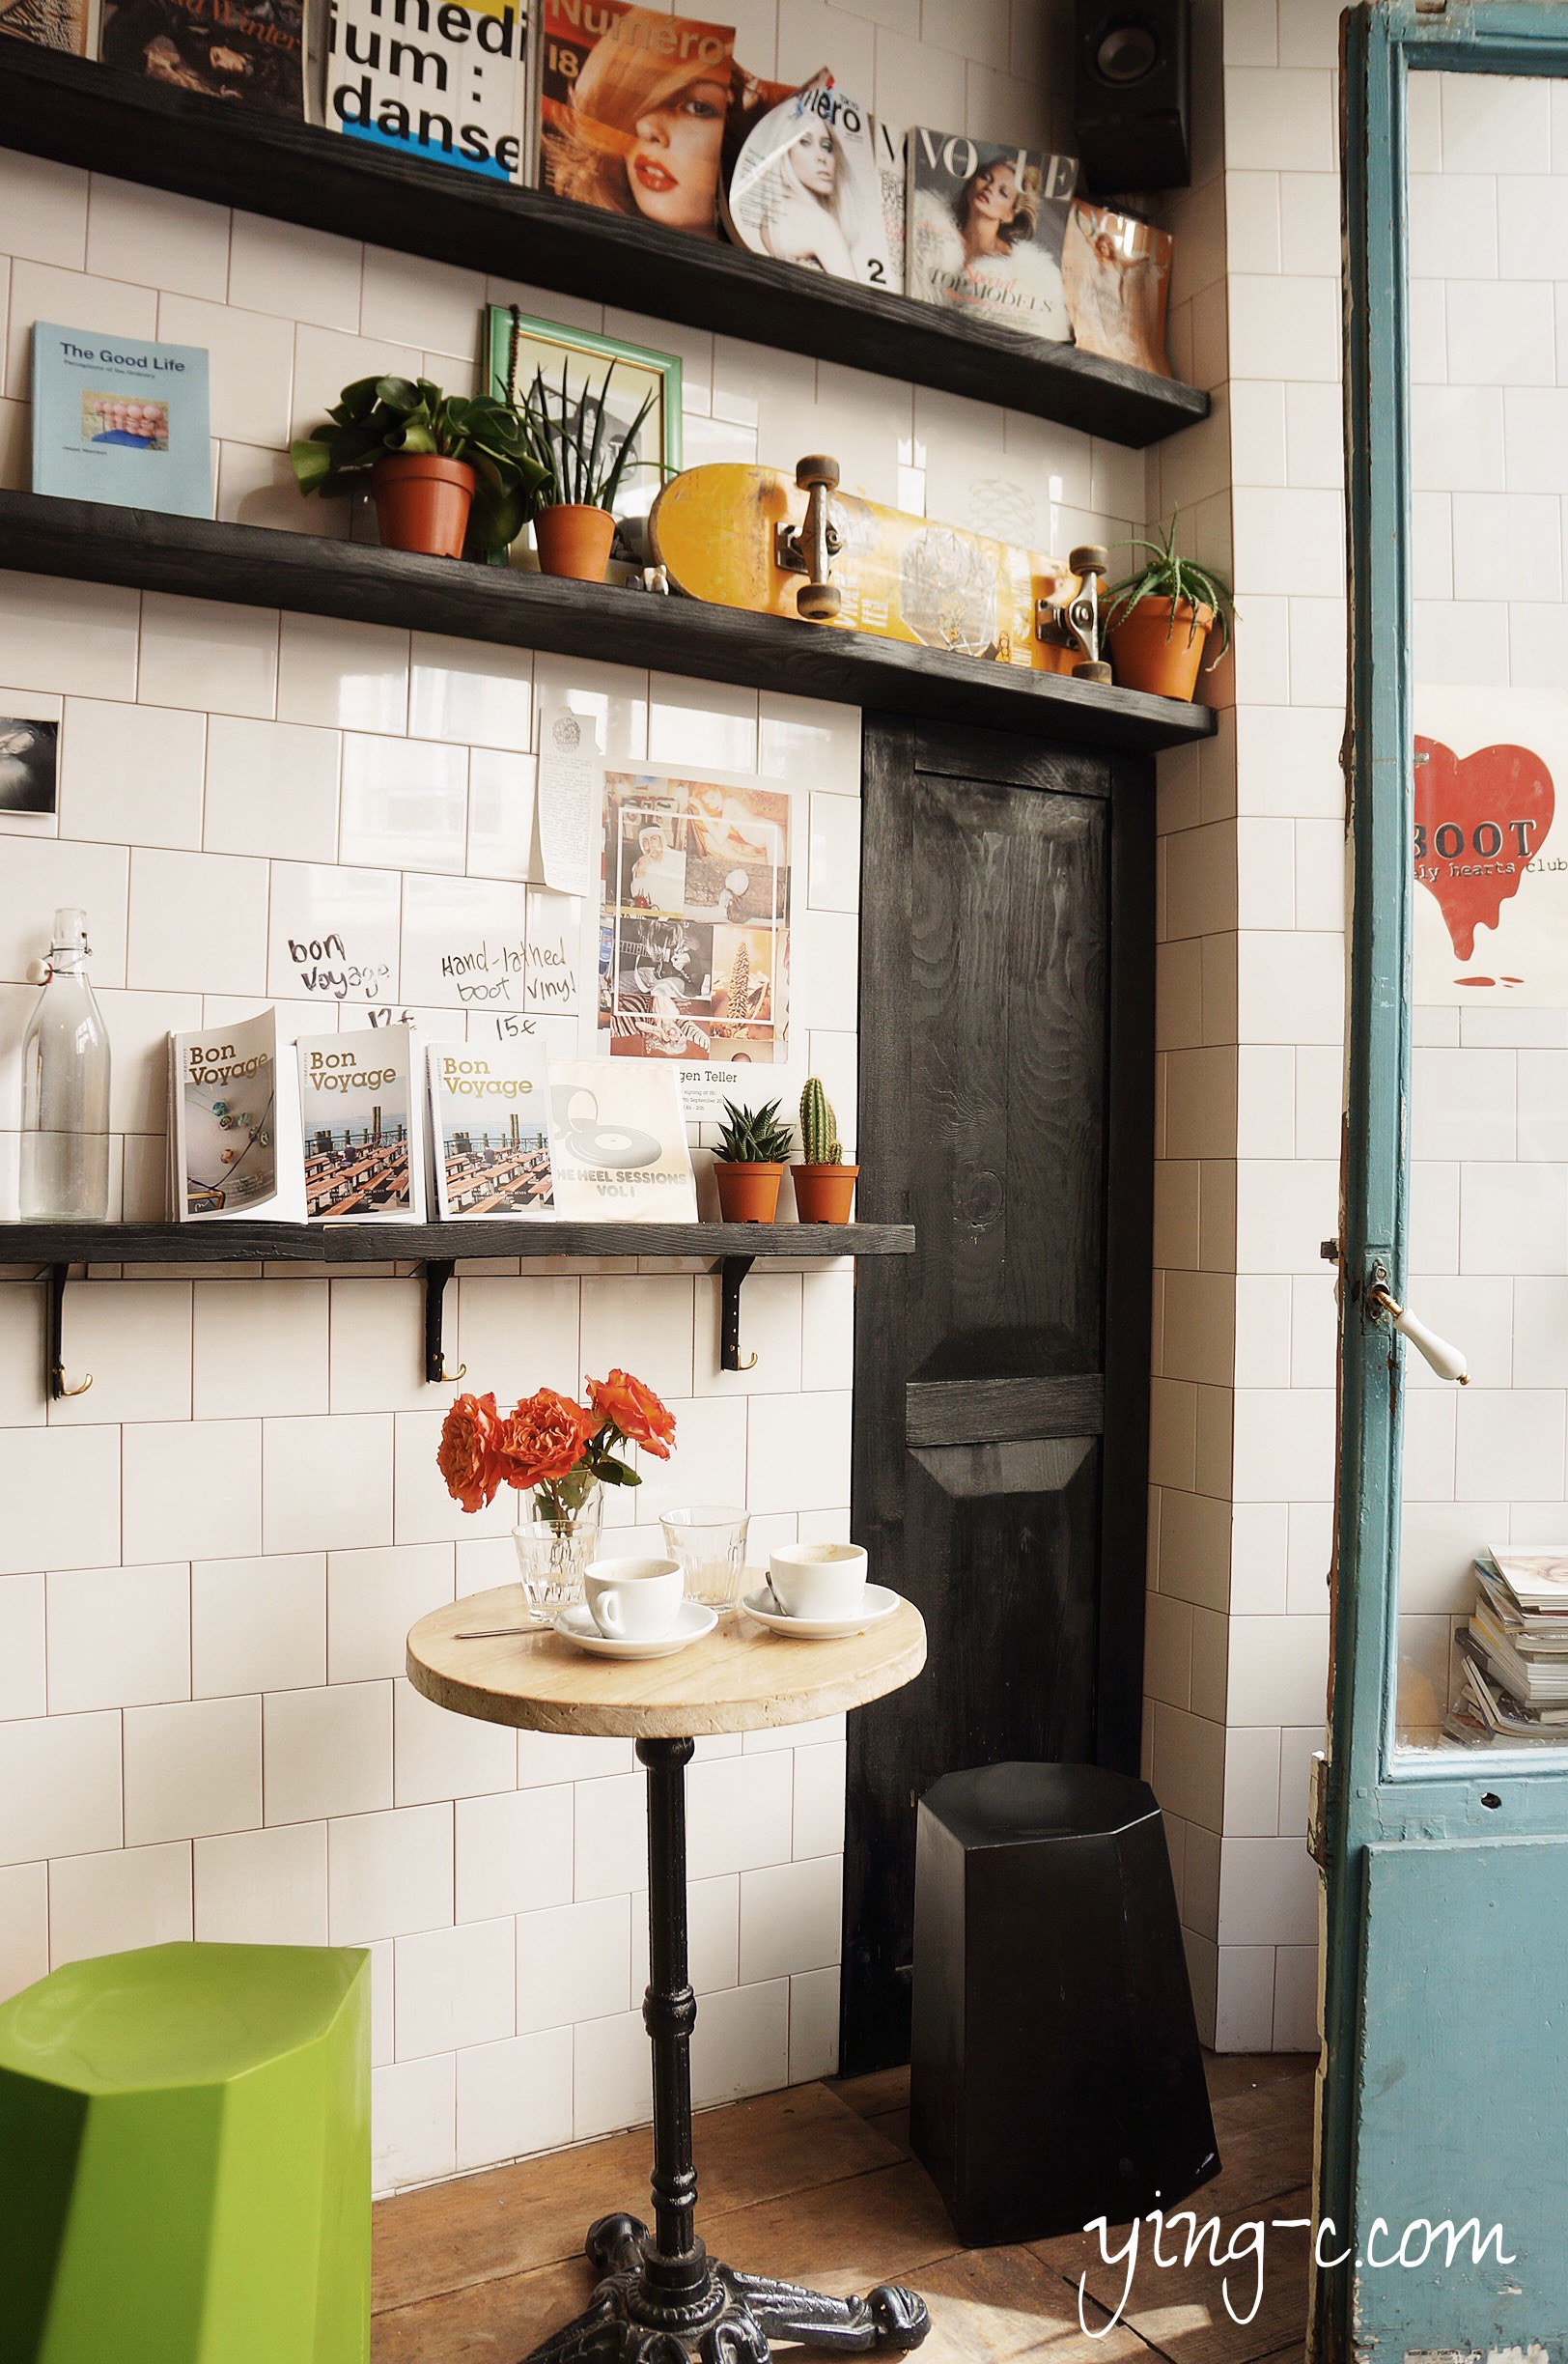 bright colors and cute details of the interiors 充滿個性與可愛細節的店內裝潢